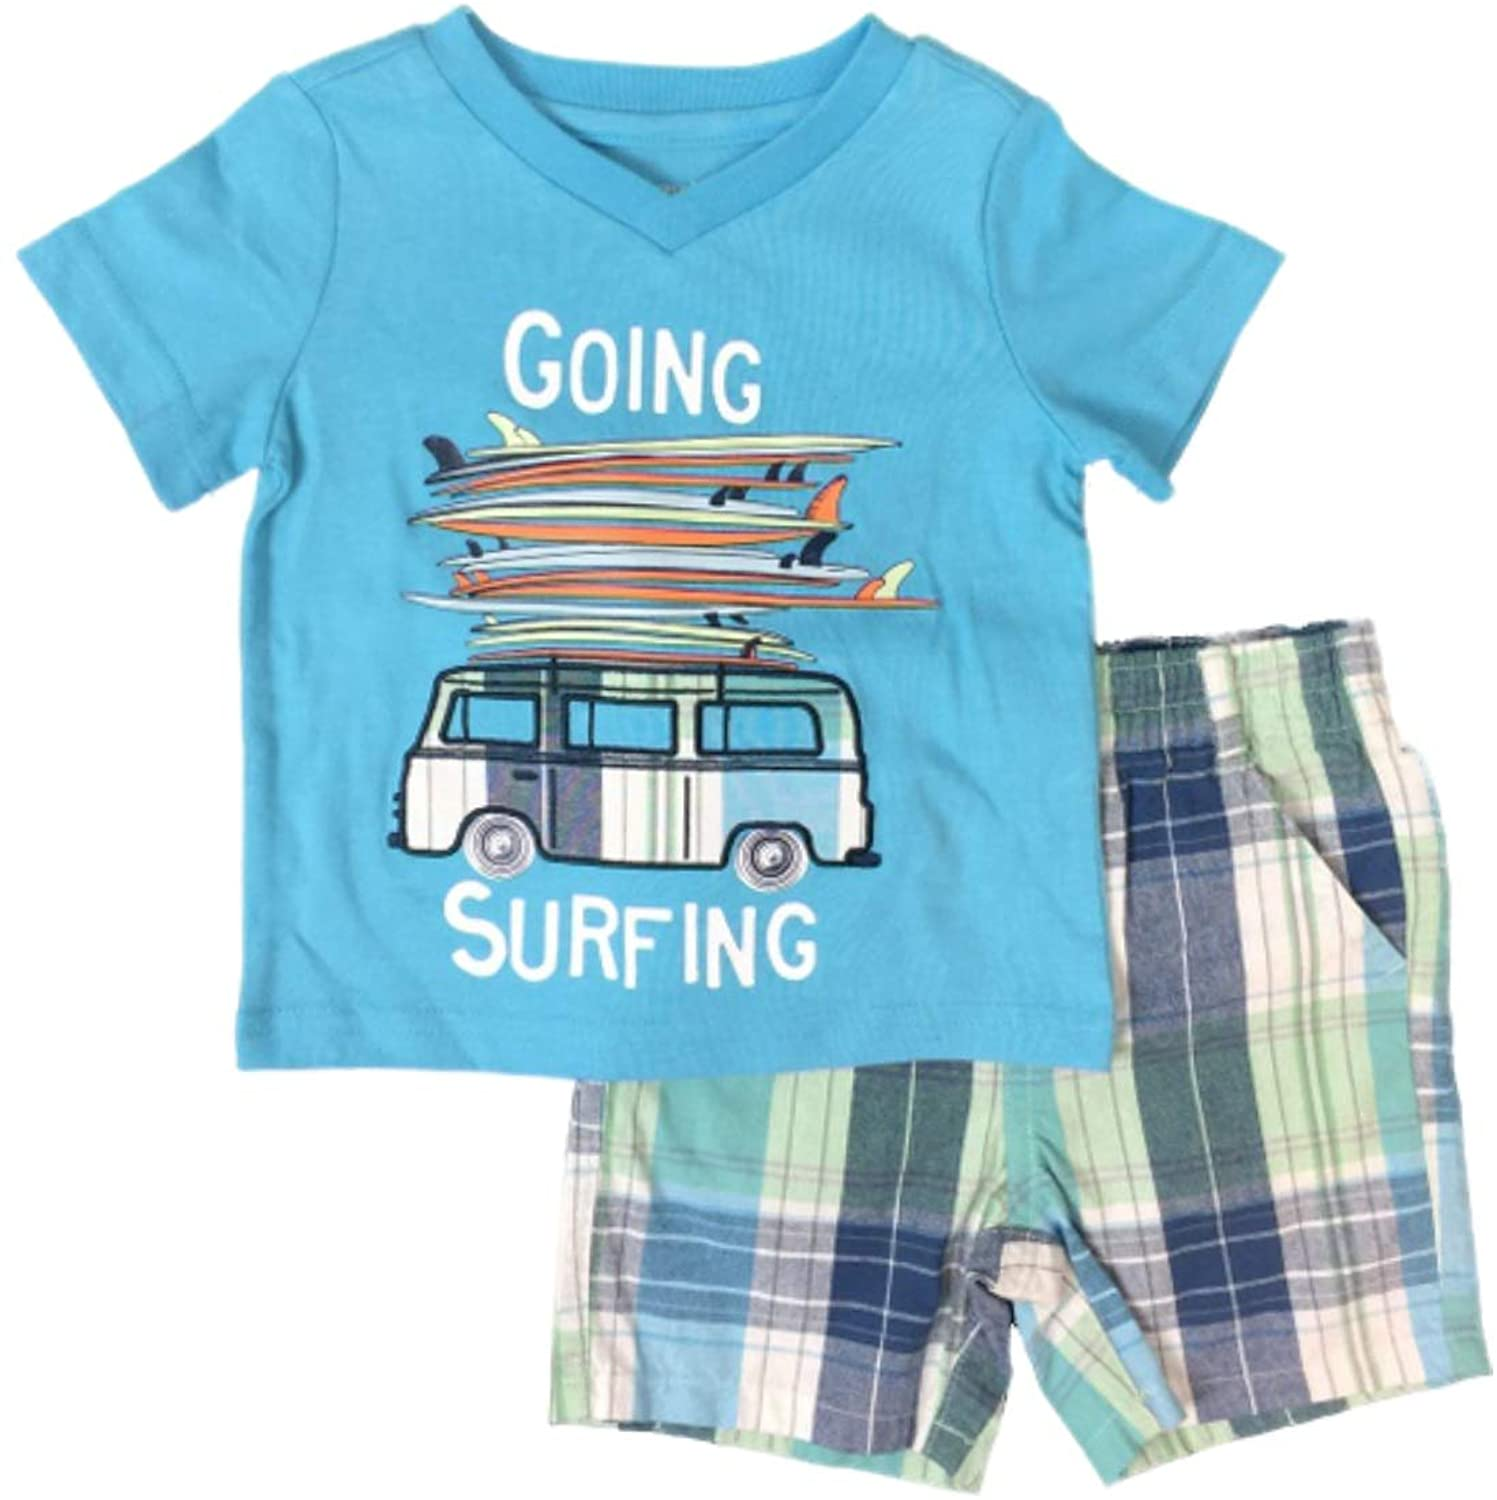 Infant & Toddler Boys Going Surfing Outfit Surf Board Shirt & Plaid Shorts